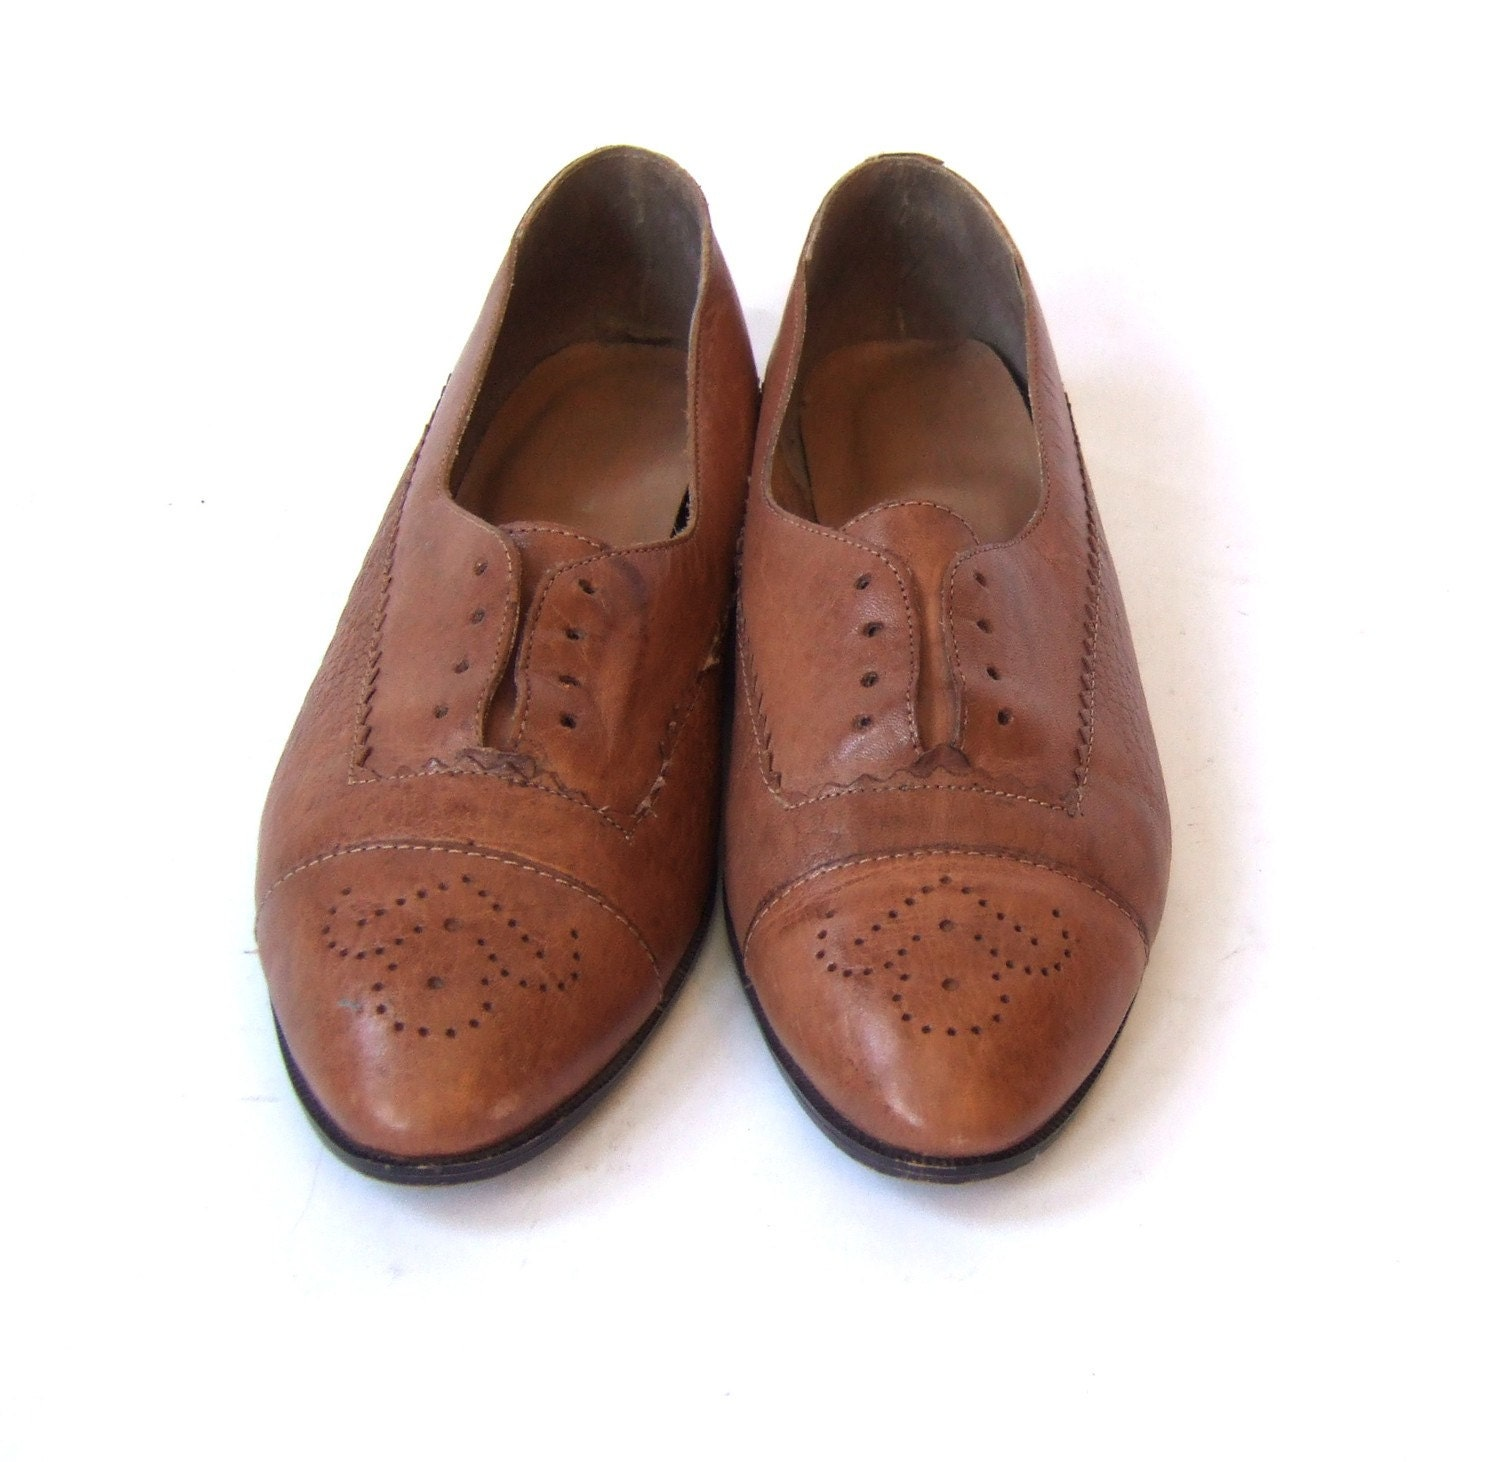 size 8 Vtg Brazilian Tan Oxfords. 70s. Reptile. Perforations.